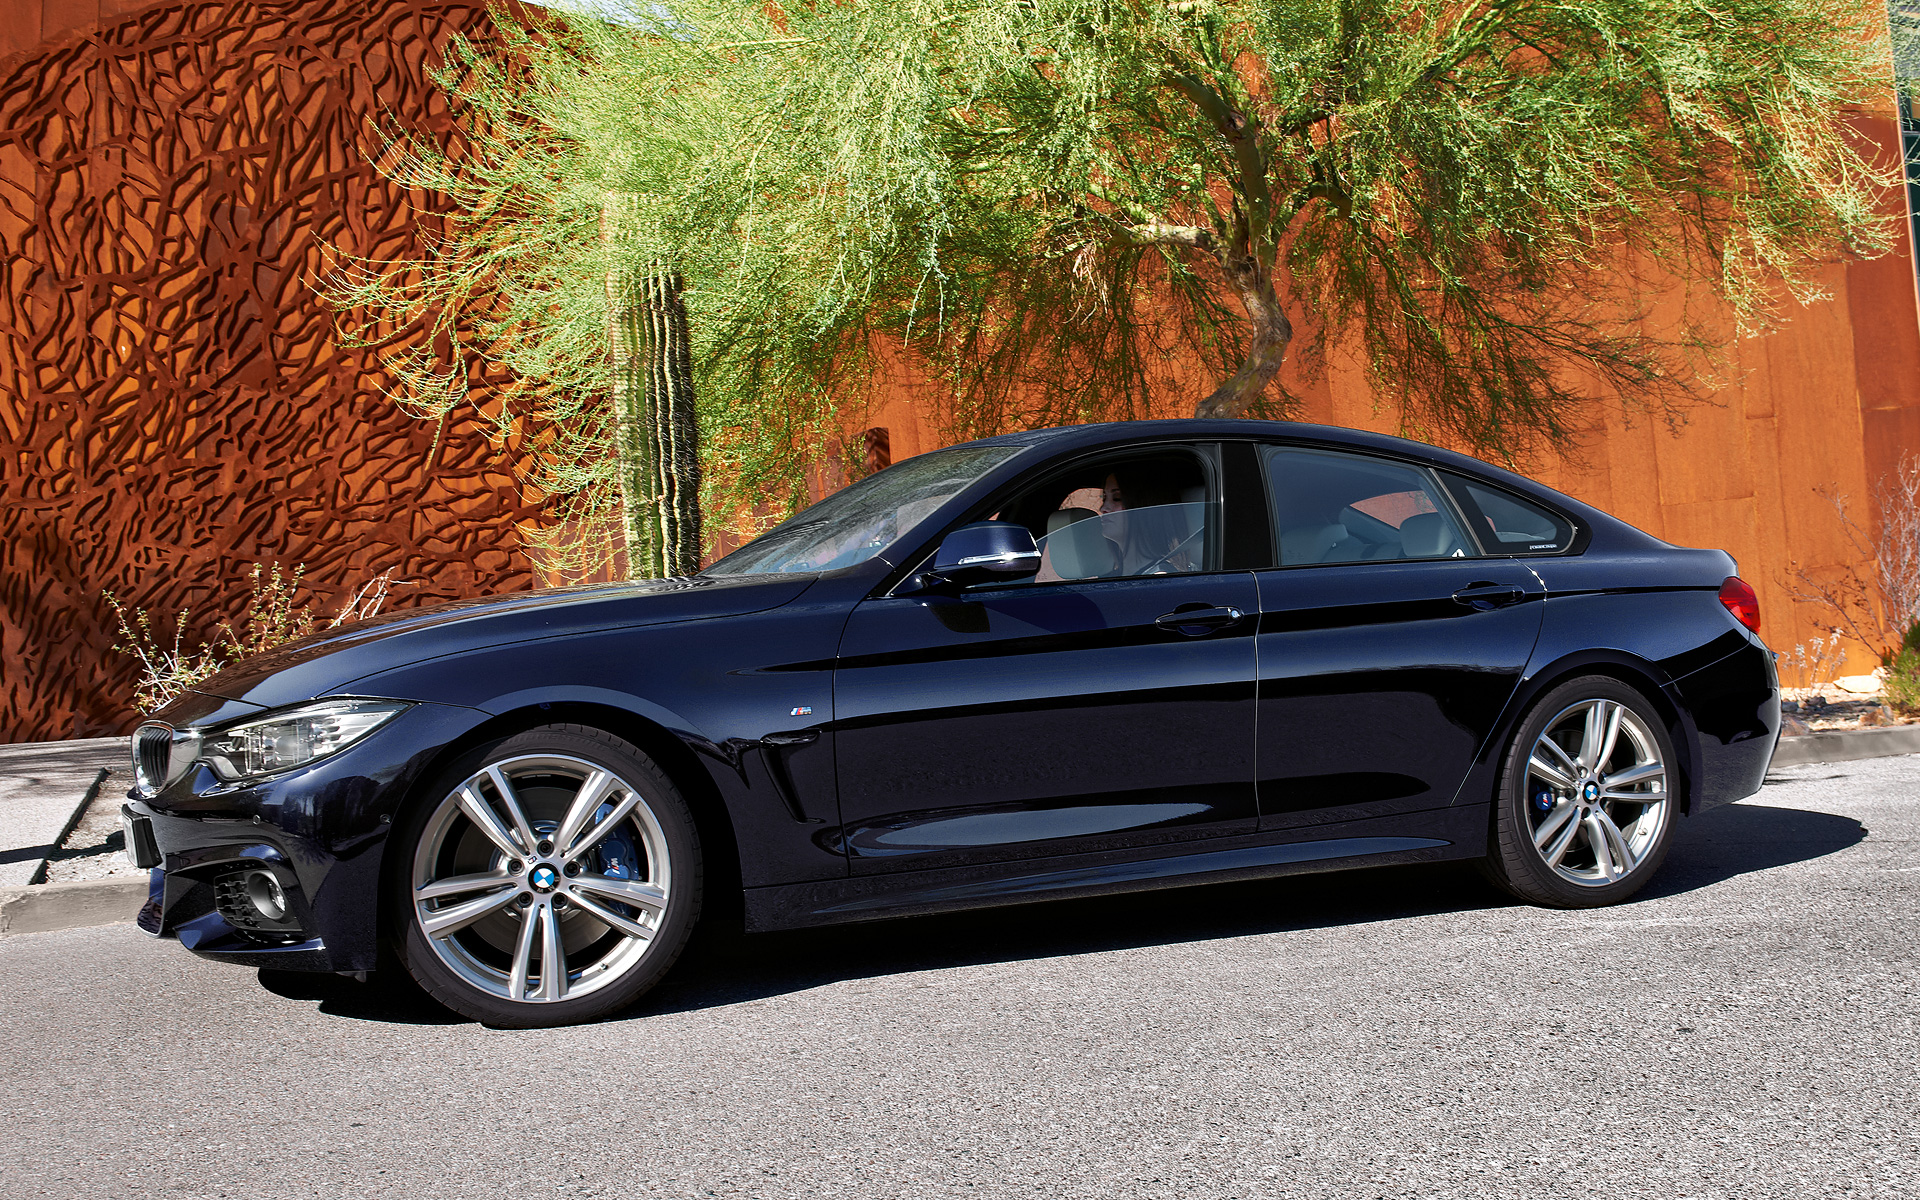 Bmw 4 series gran coup images videos for Bmw 4er gran coupe m paket